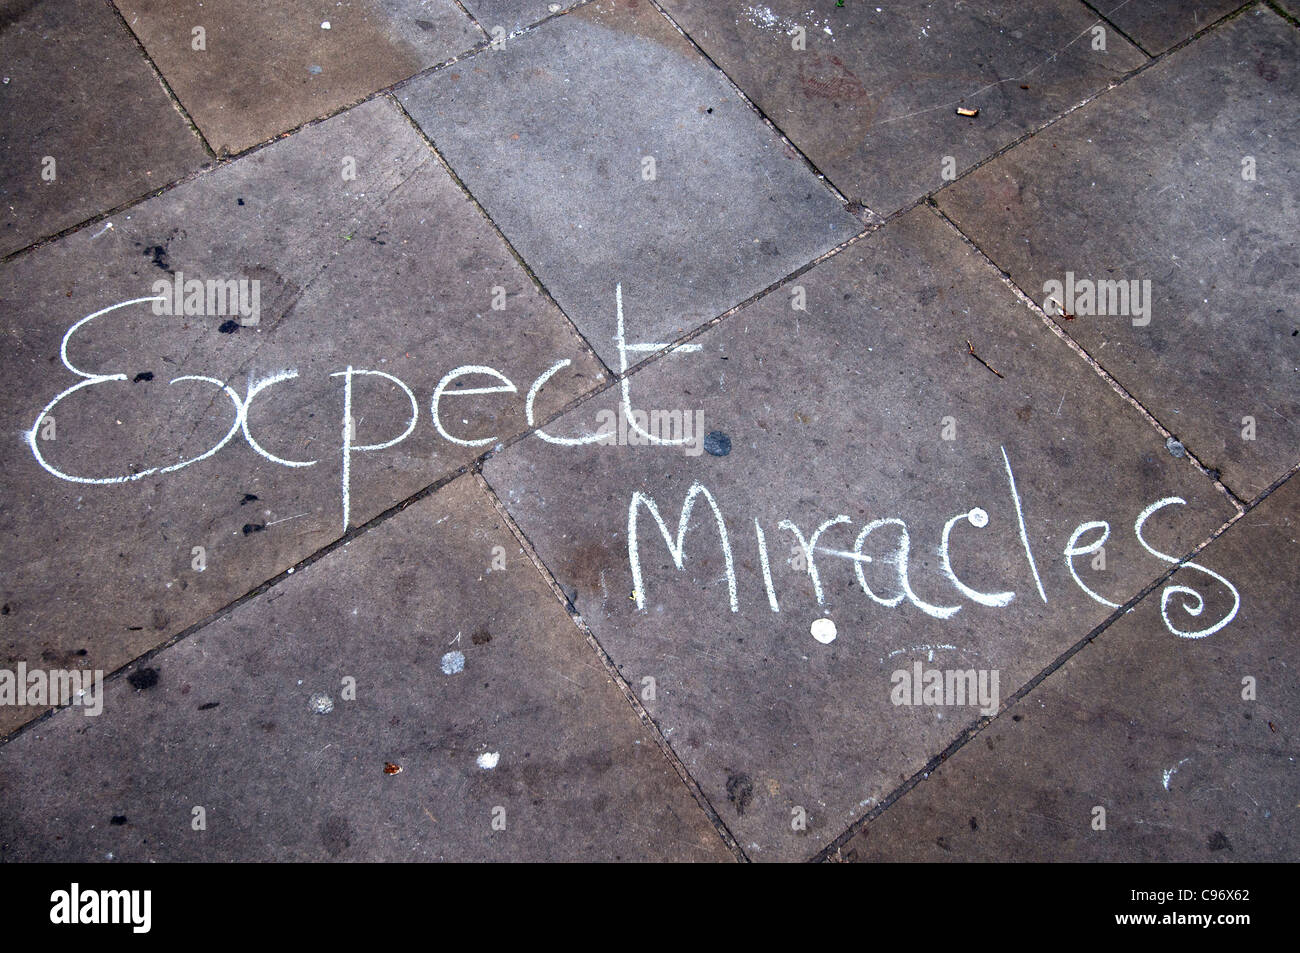 November 12th 2011Occupy London camp at St Paul's.  Writing on paving stones says Expect Miracles - Stock Image